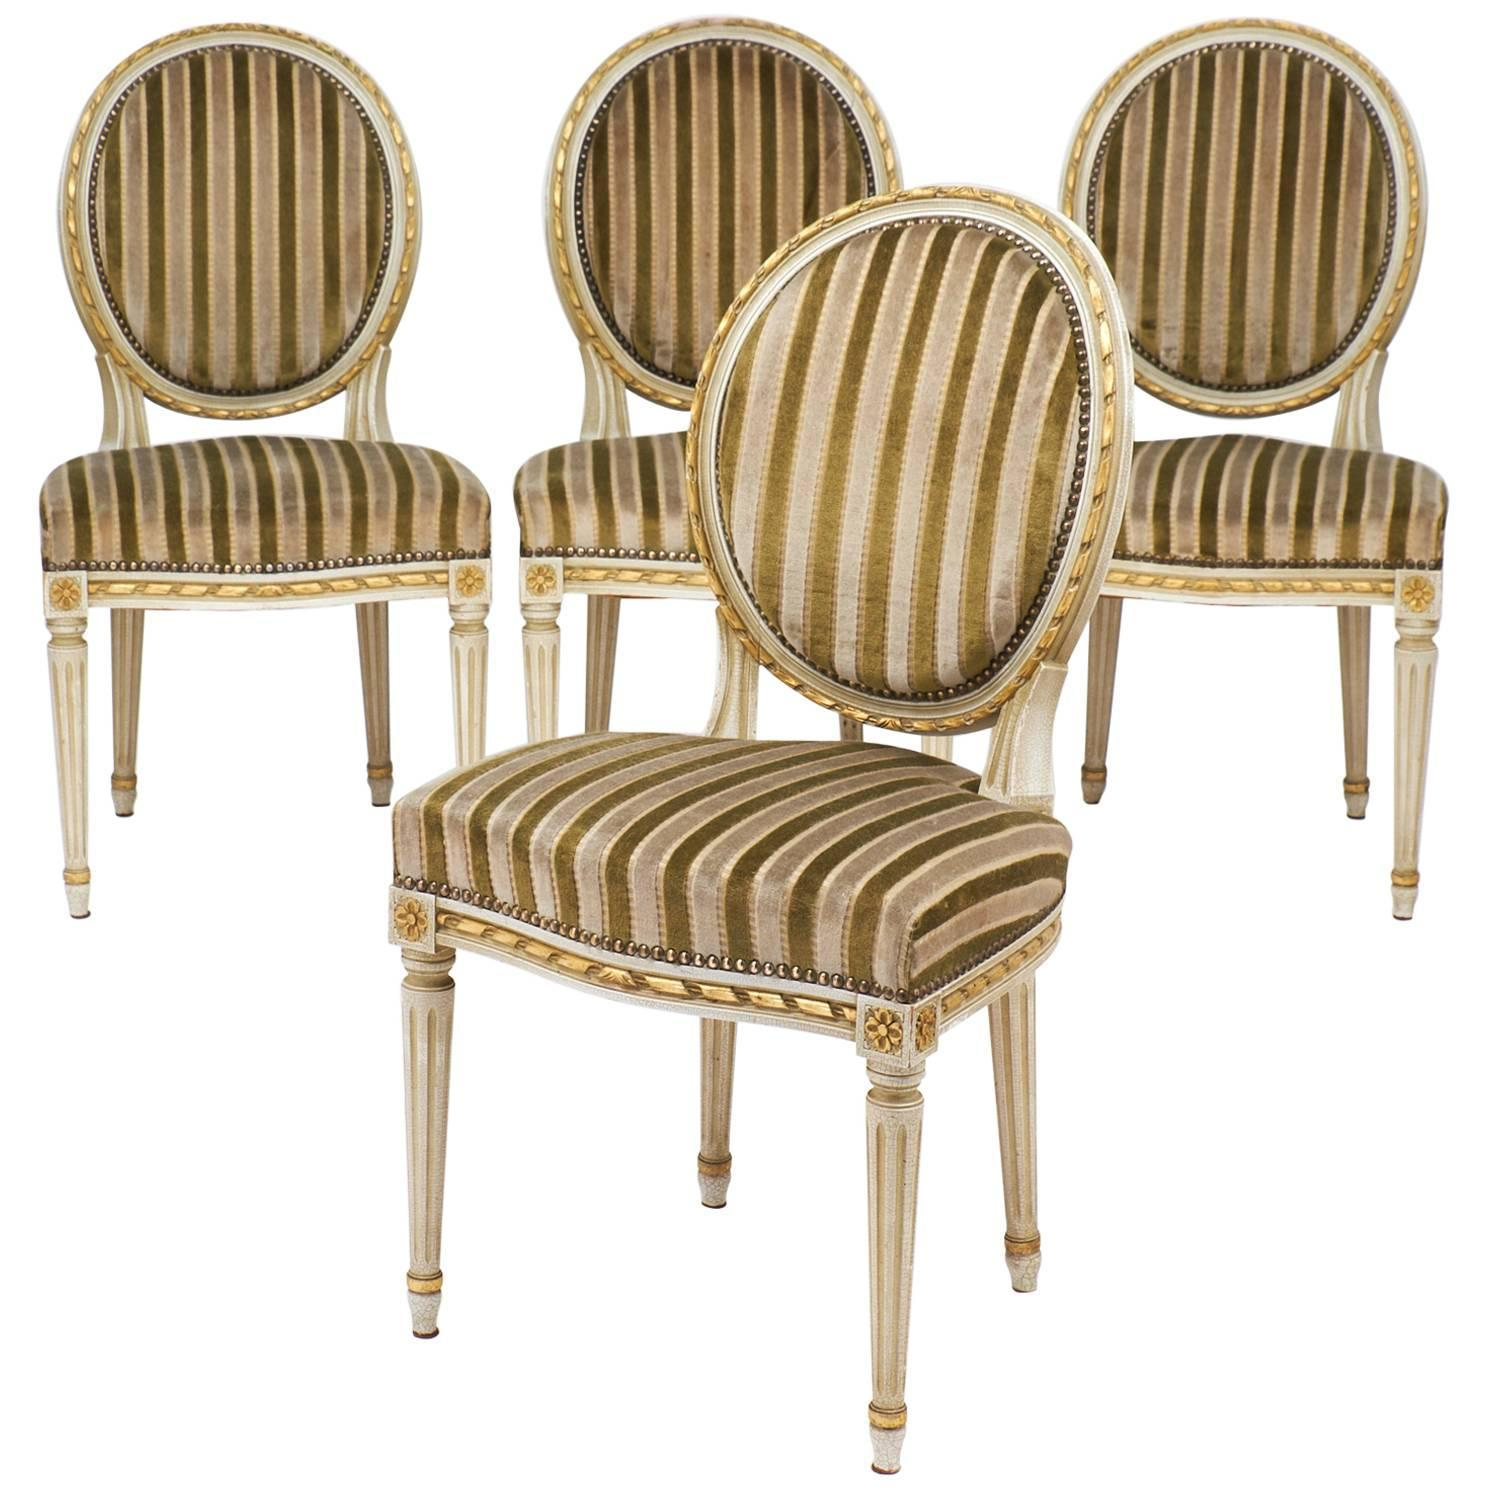 Gold Leaf Striped Velvet Set Of Four Antique Louis XVI Dining Chairs At 1stdibs